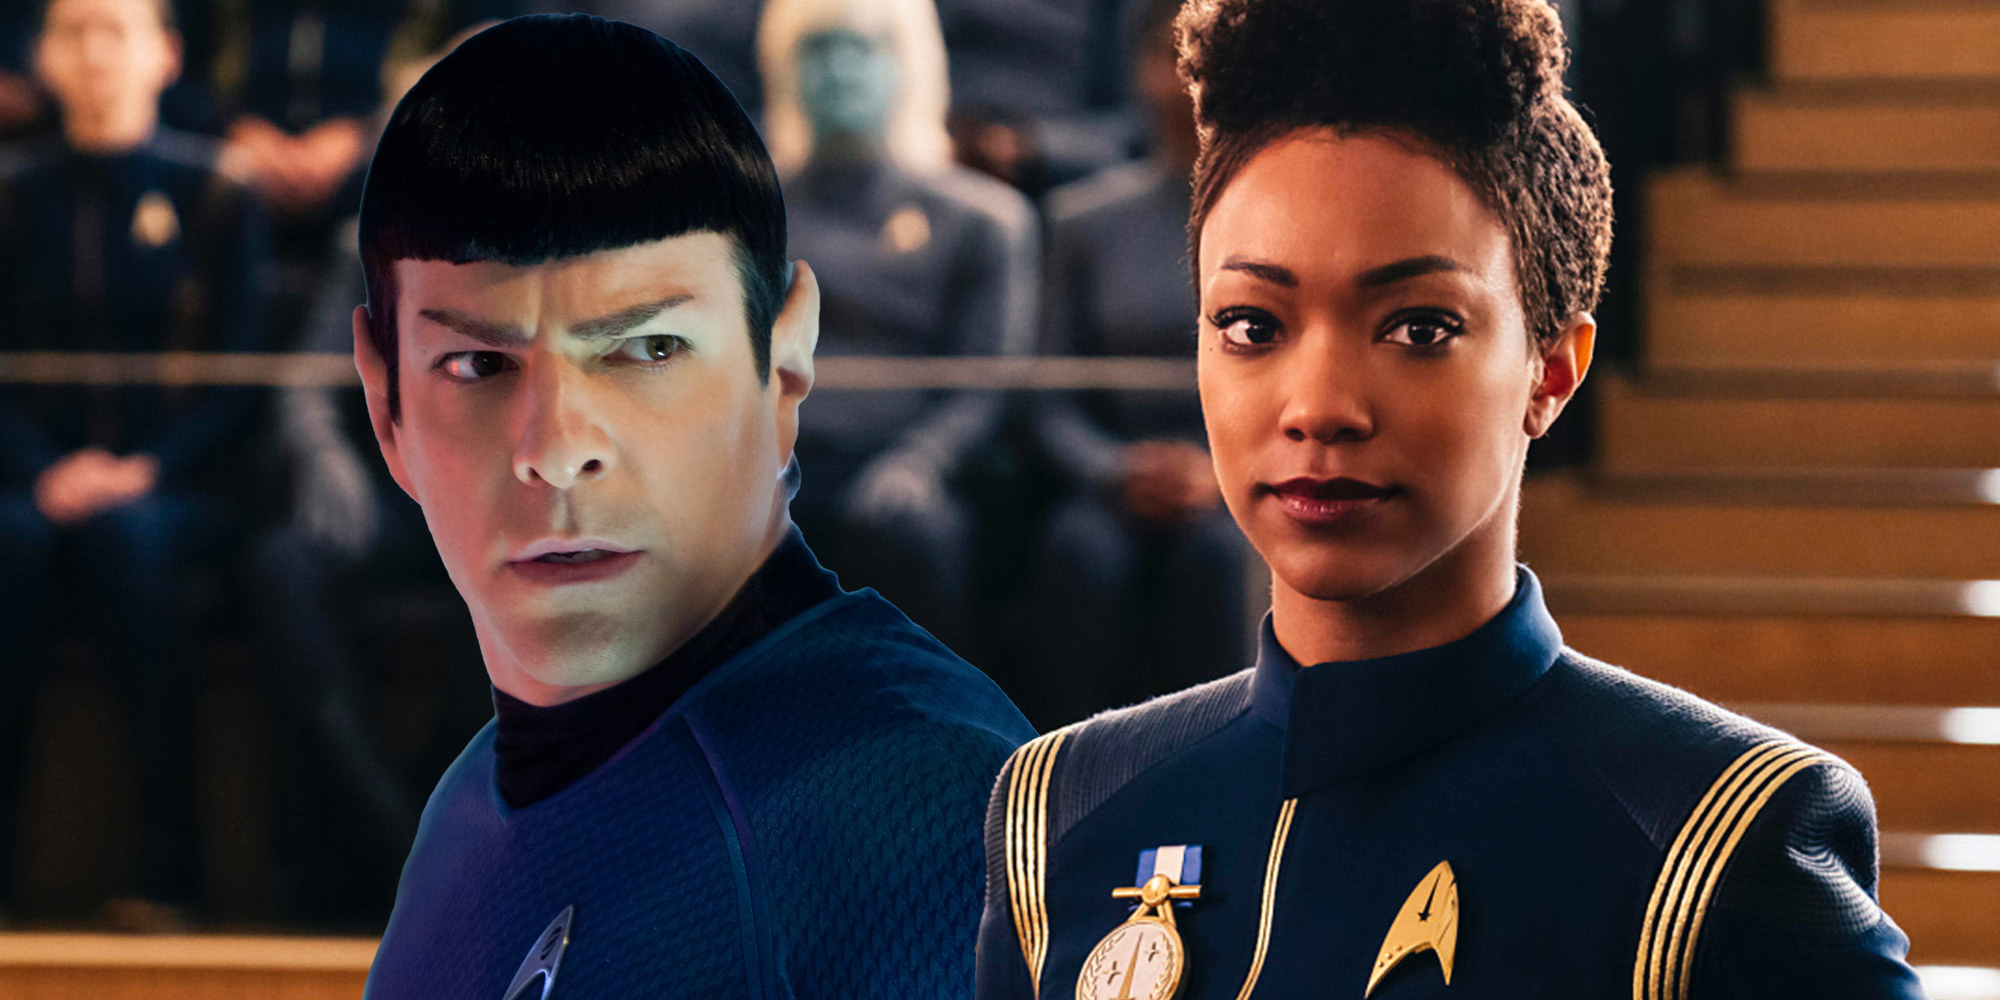 Zachary Quinto and Sonequa Martin-Green in Star Trek